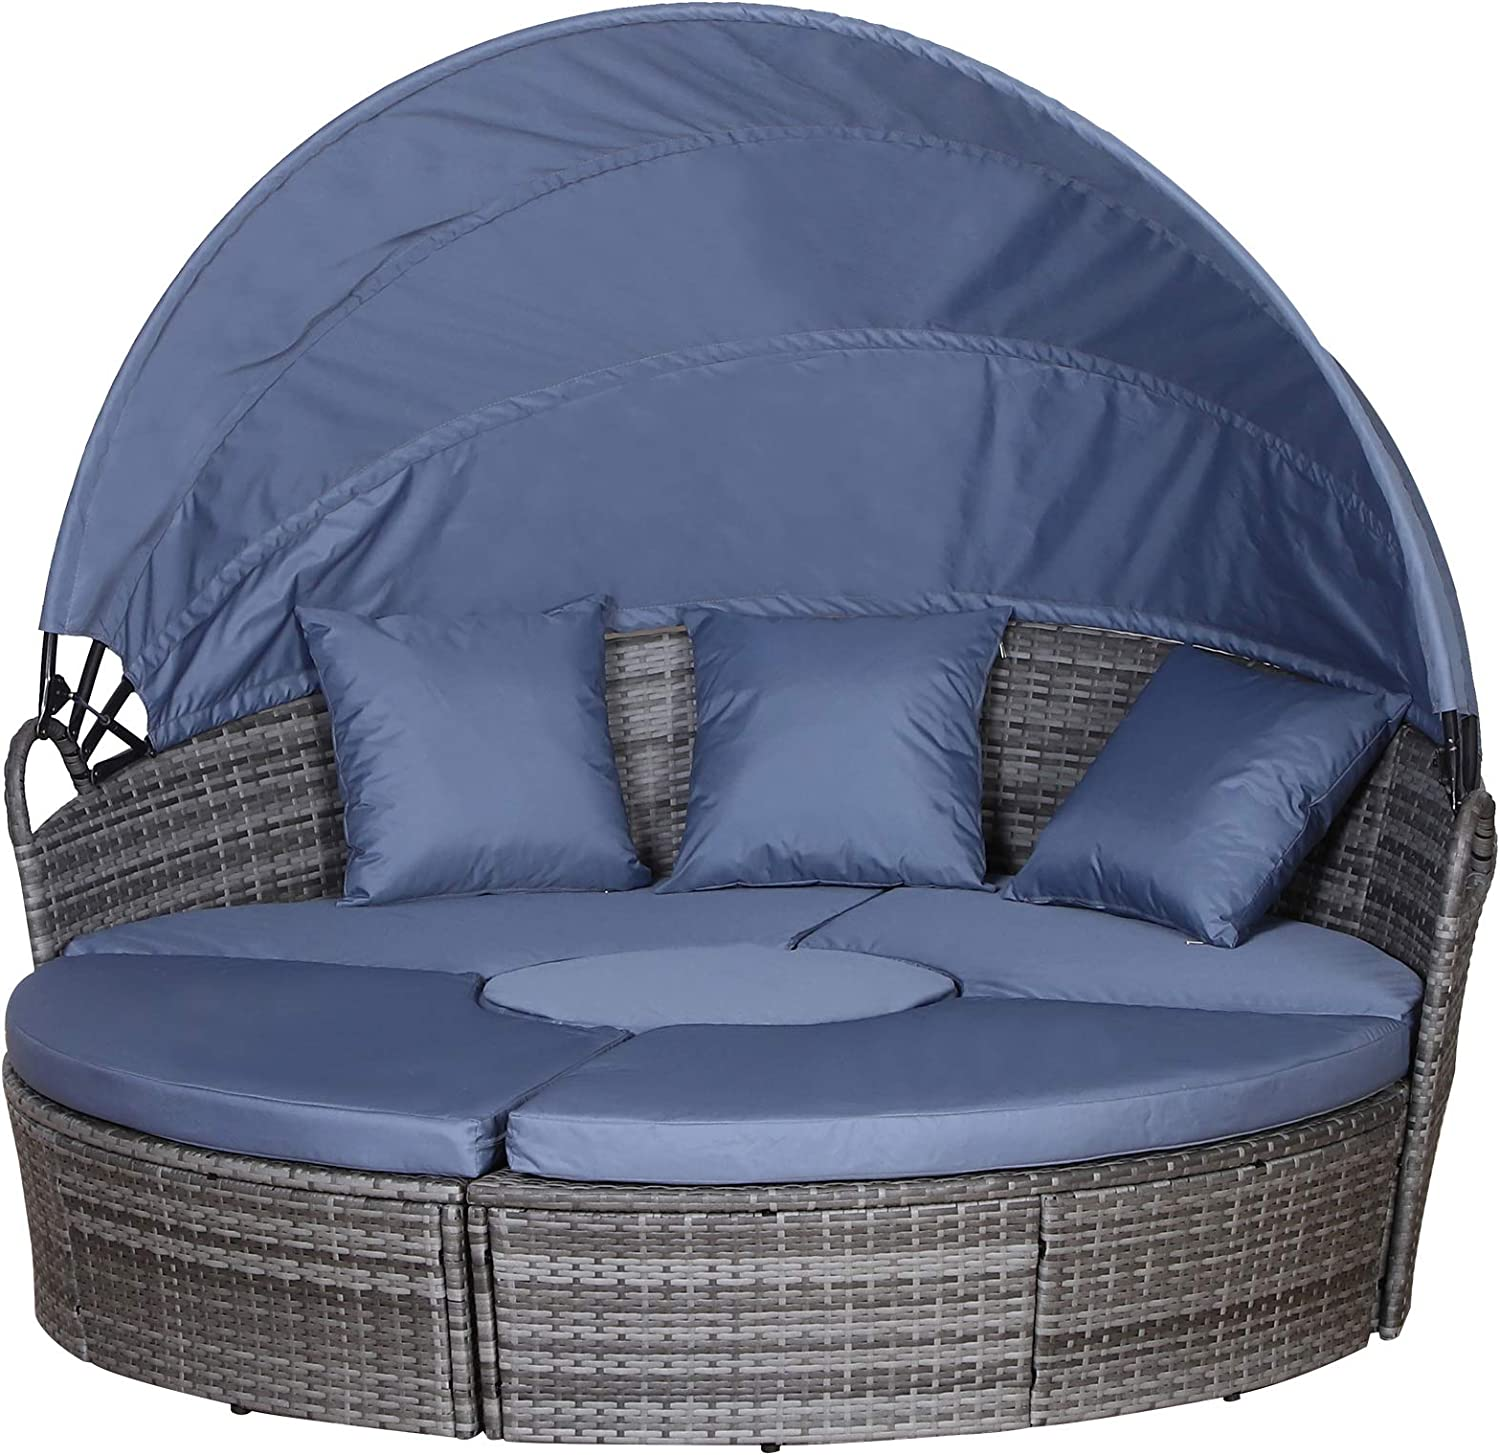 Outsunny 5-Piece Cushioned Outdoor Rattan Wicker Round Sunbed or Conversational Sofa Set with Sun Canopy, Grey